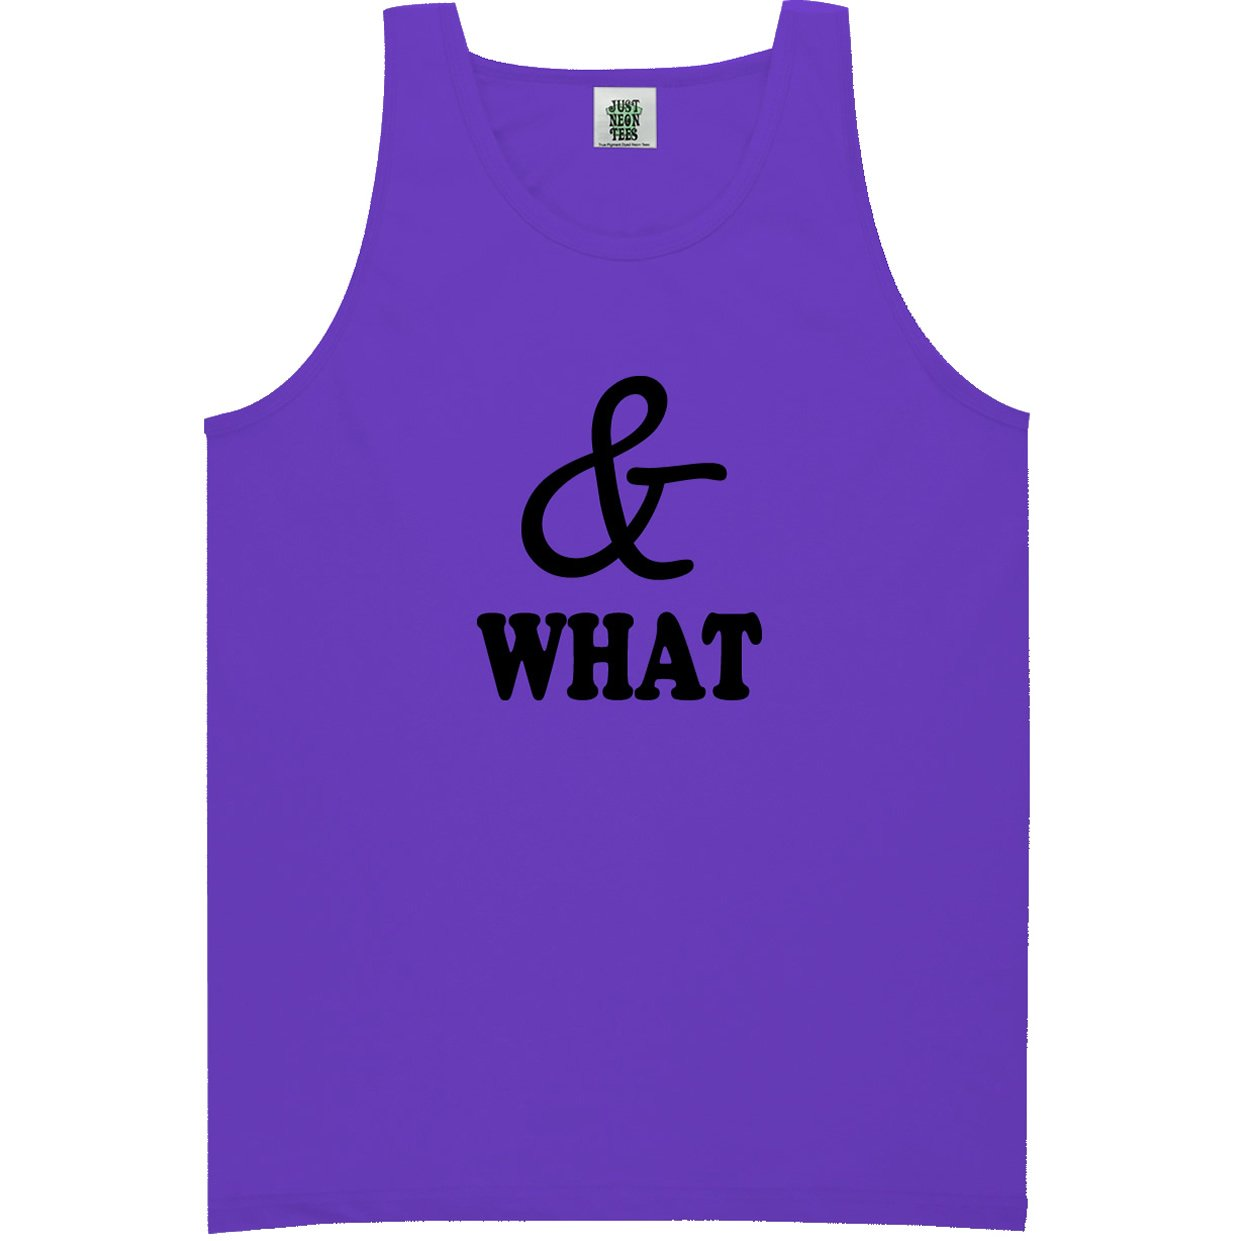 6 Bright Colors ZeroGravitee Youth /& What Bright Neon Tank Top